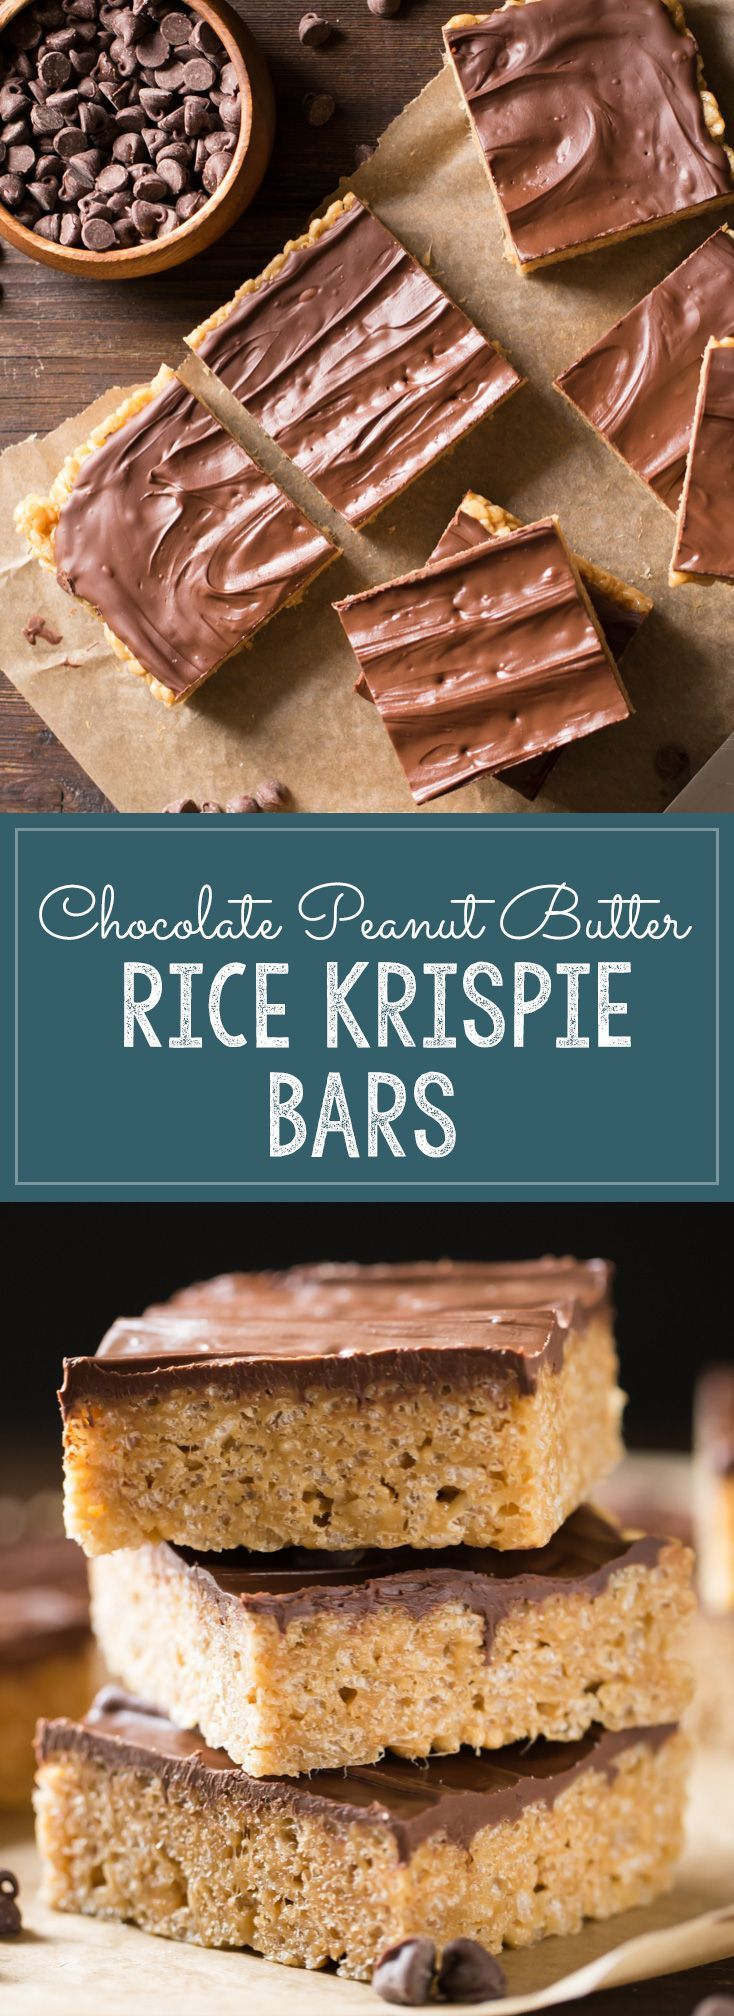 Chocolate Peanut Butter Rice Krispie Bars - Rice Krispie Bars with a caramel base, peanut butter, and a chocolate topping! Something good made even better!